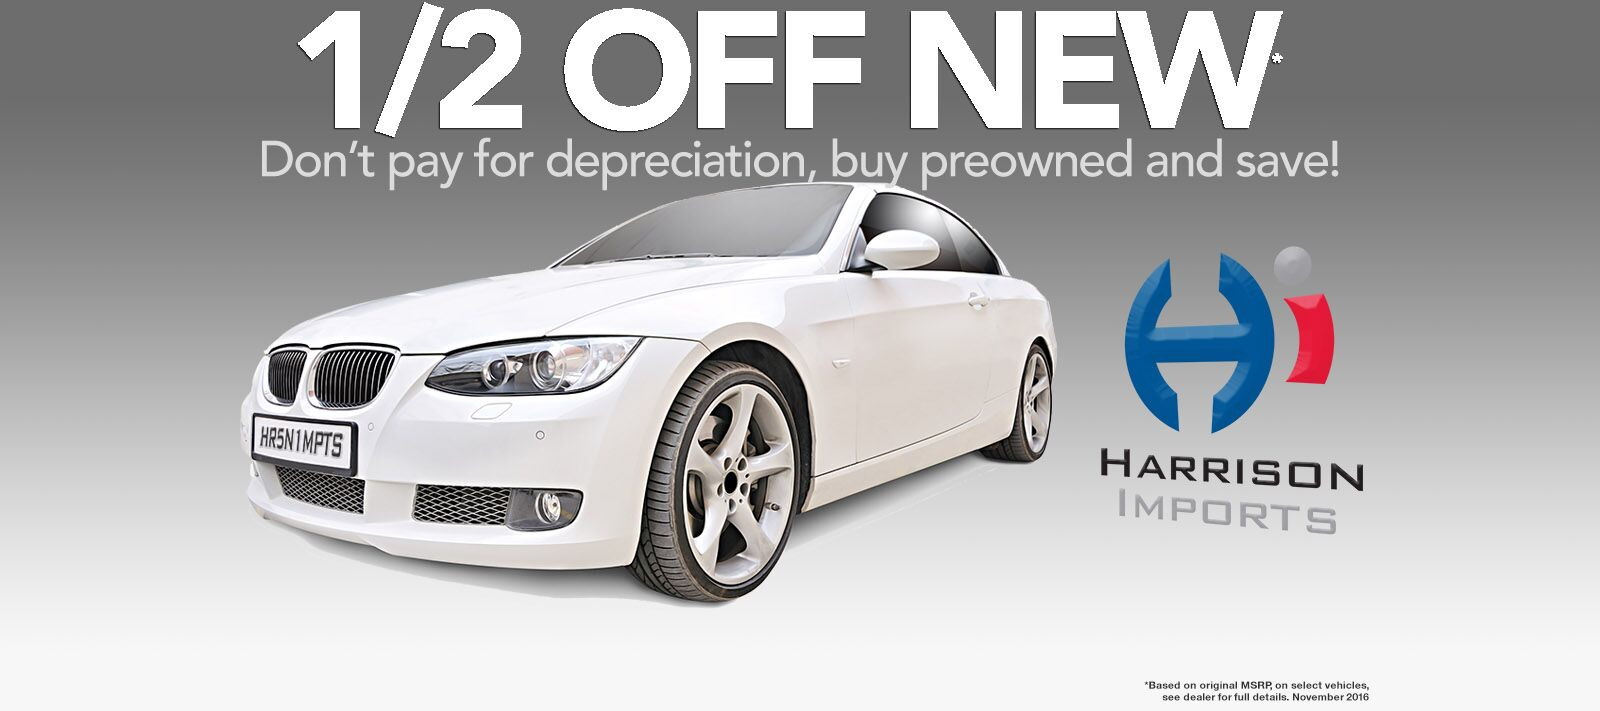 Preowned Vehicles are half off at Harrison Imports